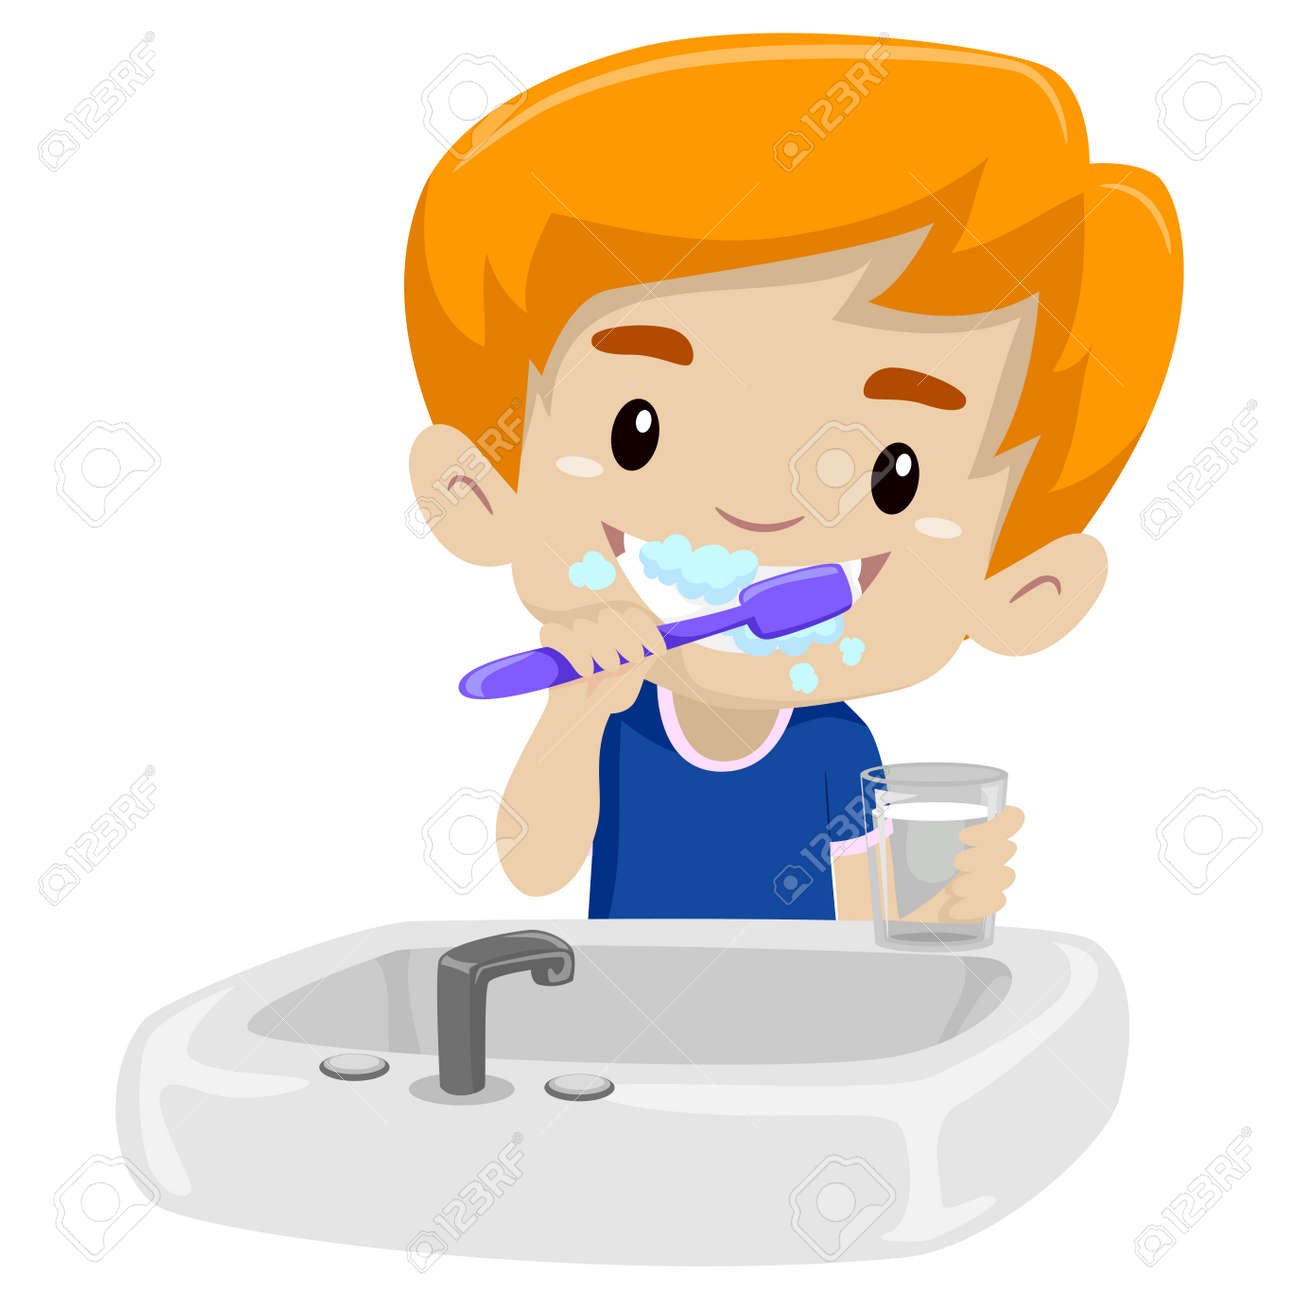 vector illustration of kid boy brushing her teeth royalty free